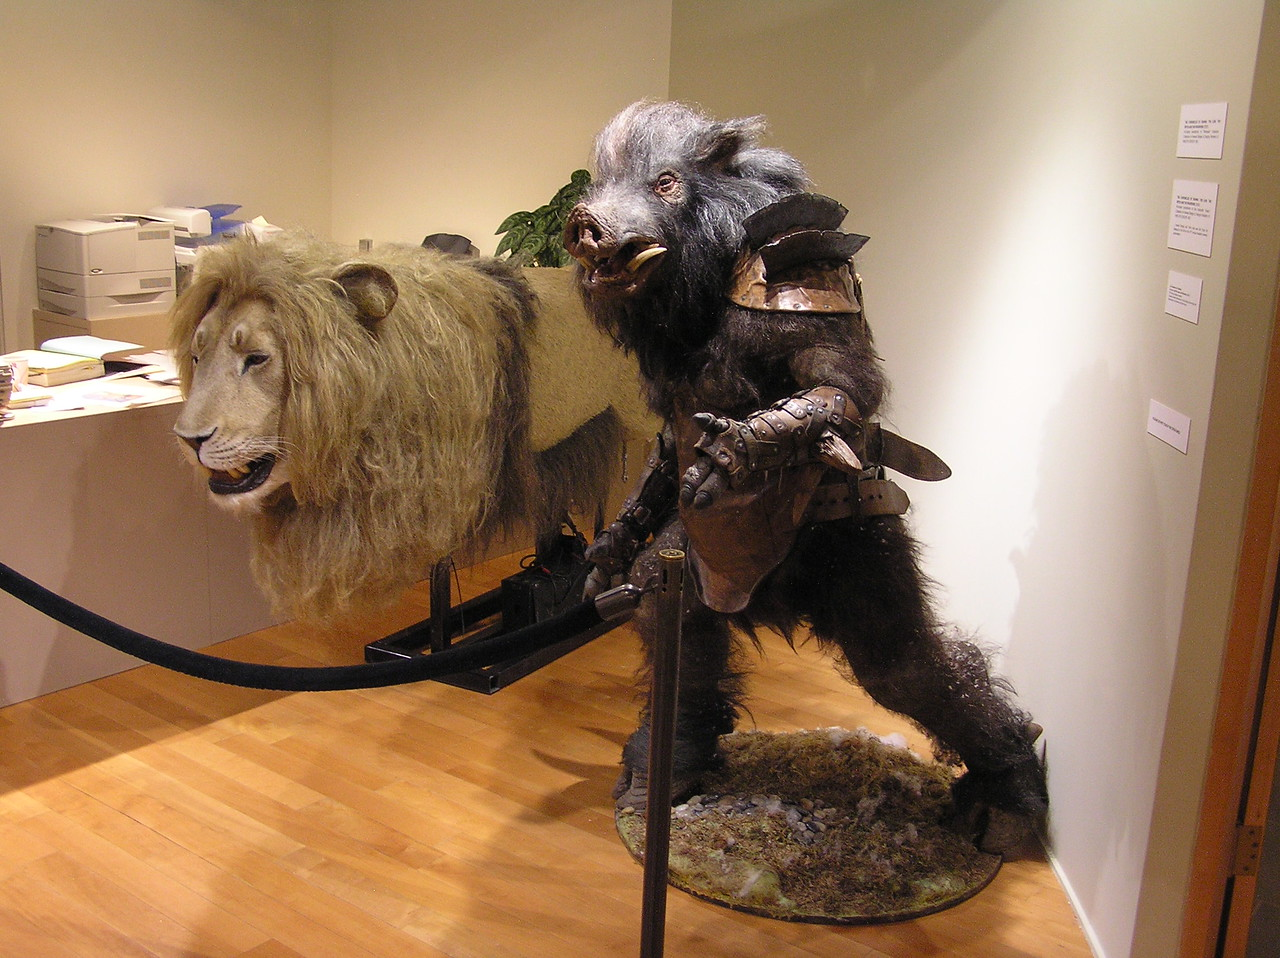 Aslan and a minoboar, from <i>The Chronicles of Narnia: The Lion, the Witch, and the Wardrobe</i> (2005)